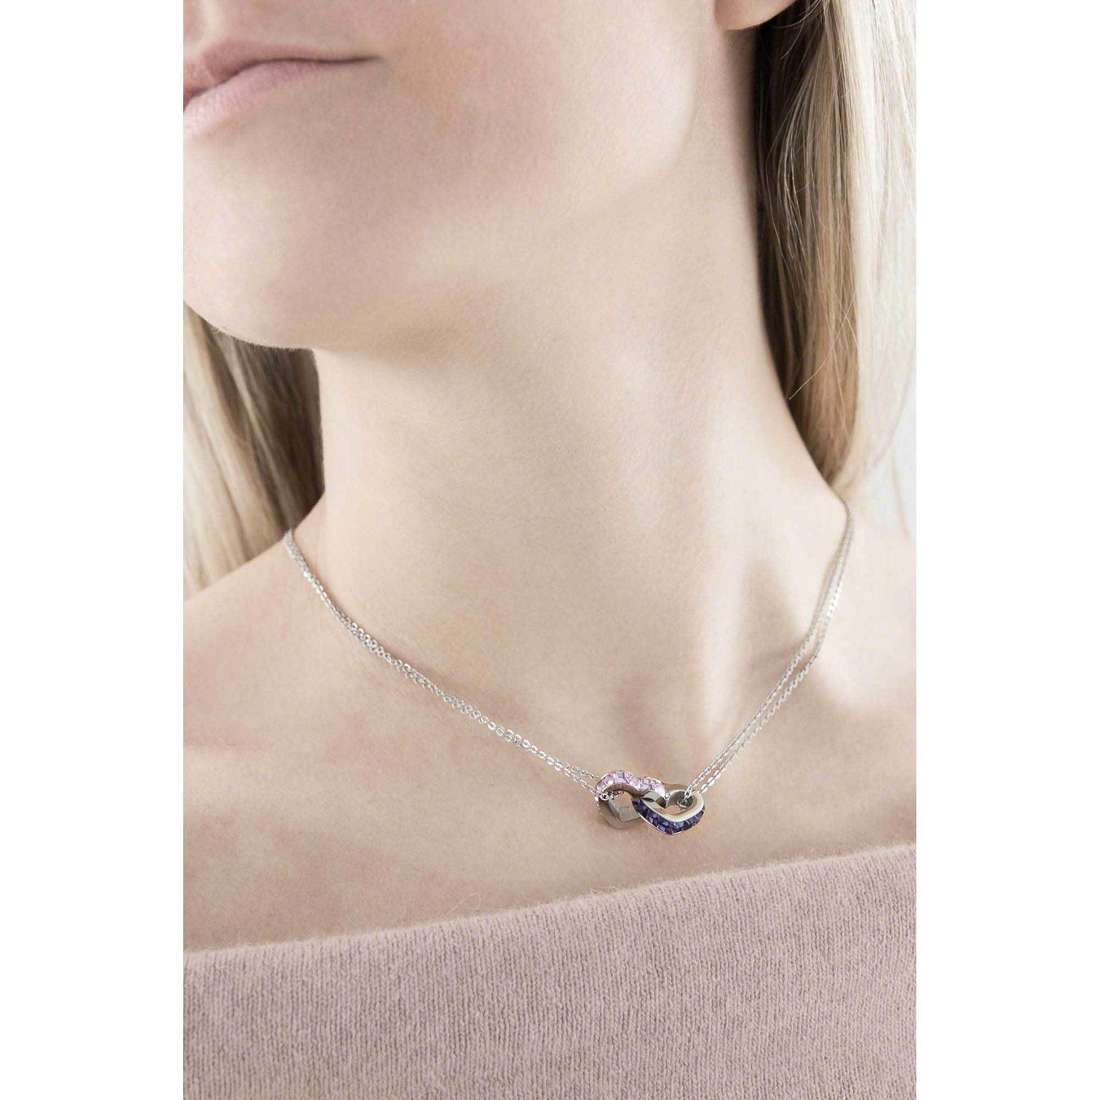 Brosway colliers Romeo & Juliet femme BRJ08 indosso